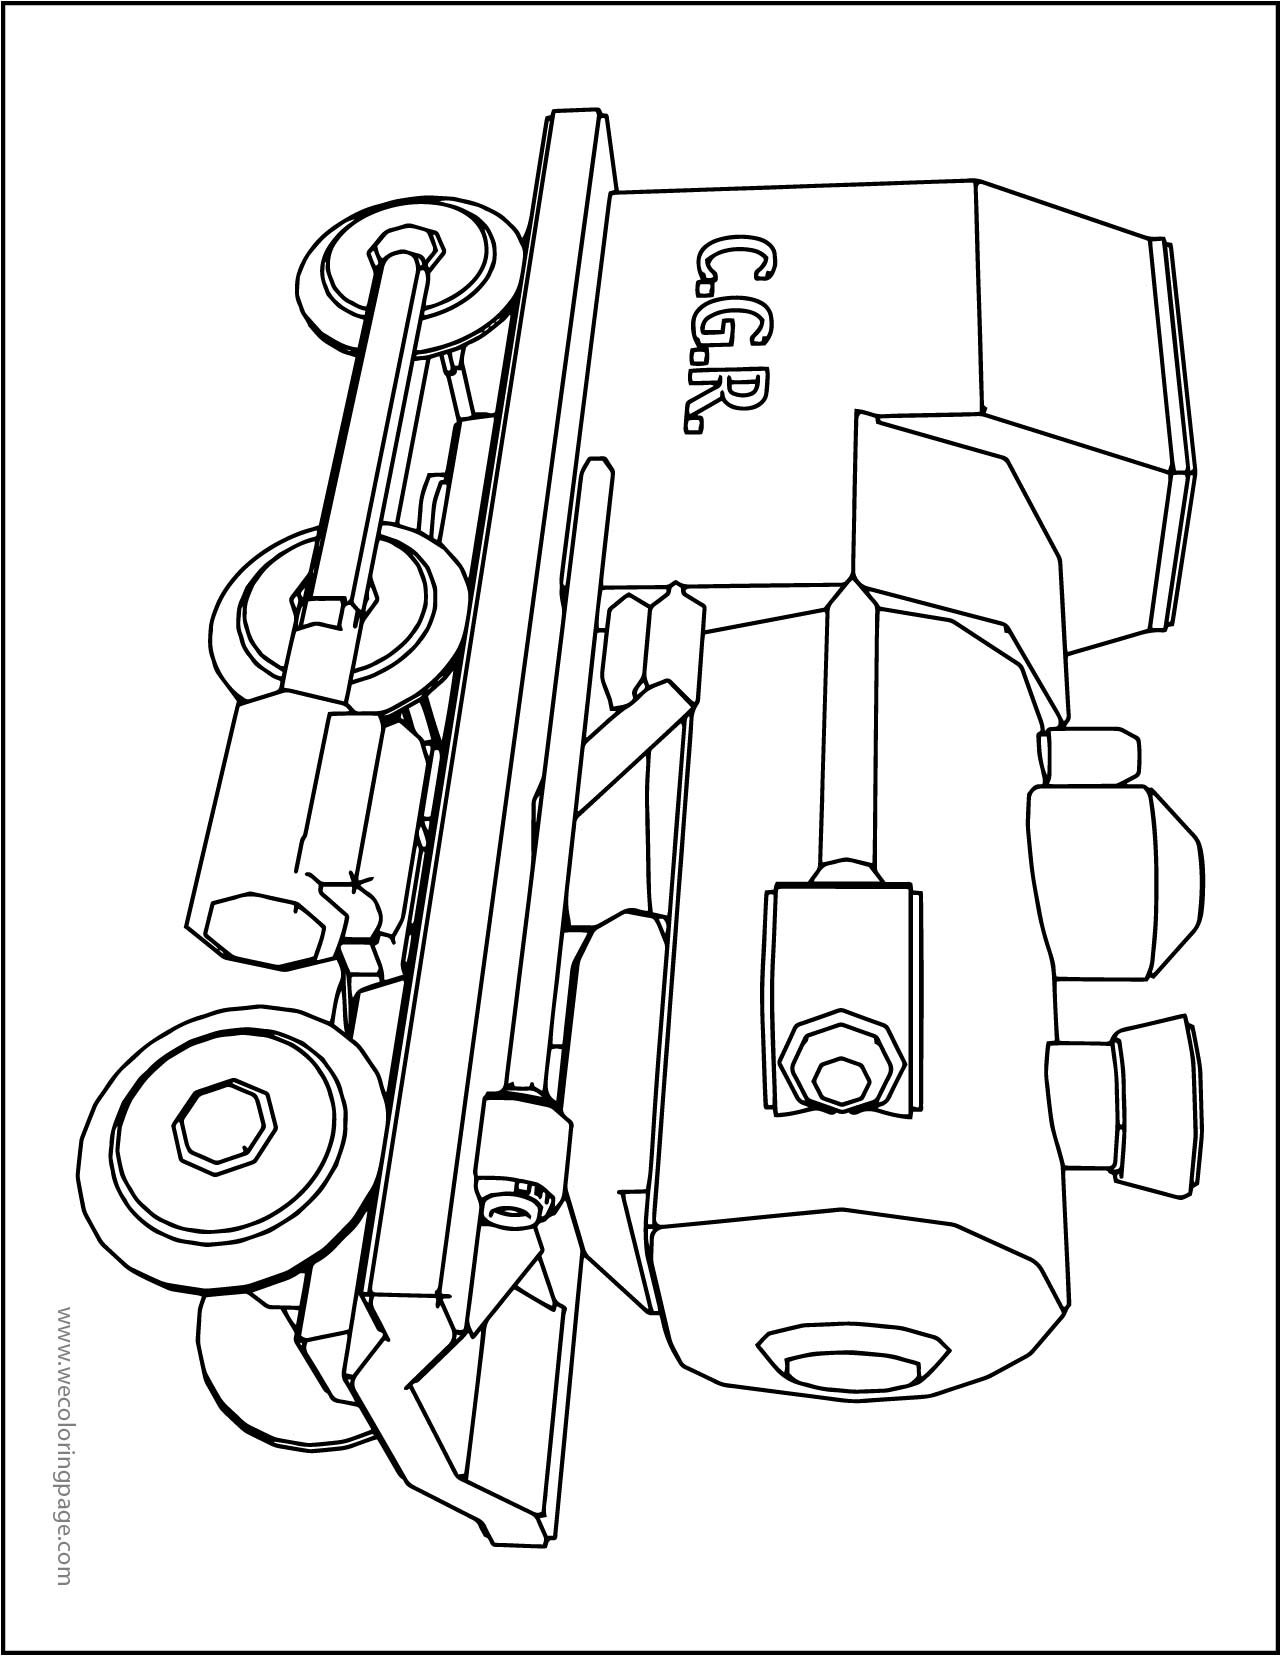 Chuggington Small Train A4 Page Printable Coloring Page